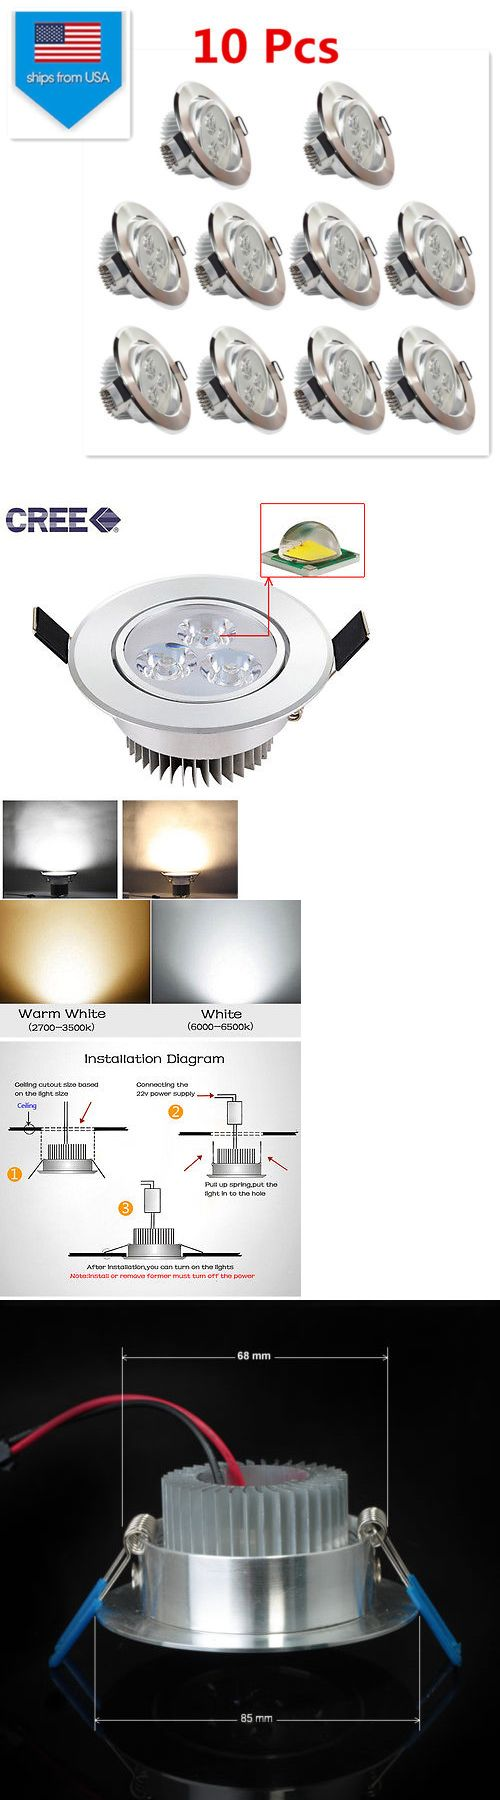 Lamps And Lighting: Us 10Ppcs 3W Cree Led Recessed Ceiling Light Downlight Spot Lamp Bulb Cool White -> BUY IT NOW ONLY: $36.27 on eBay!